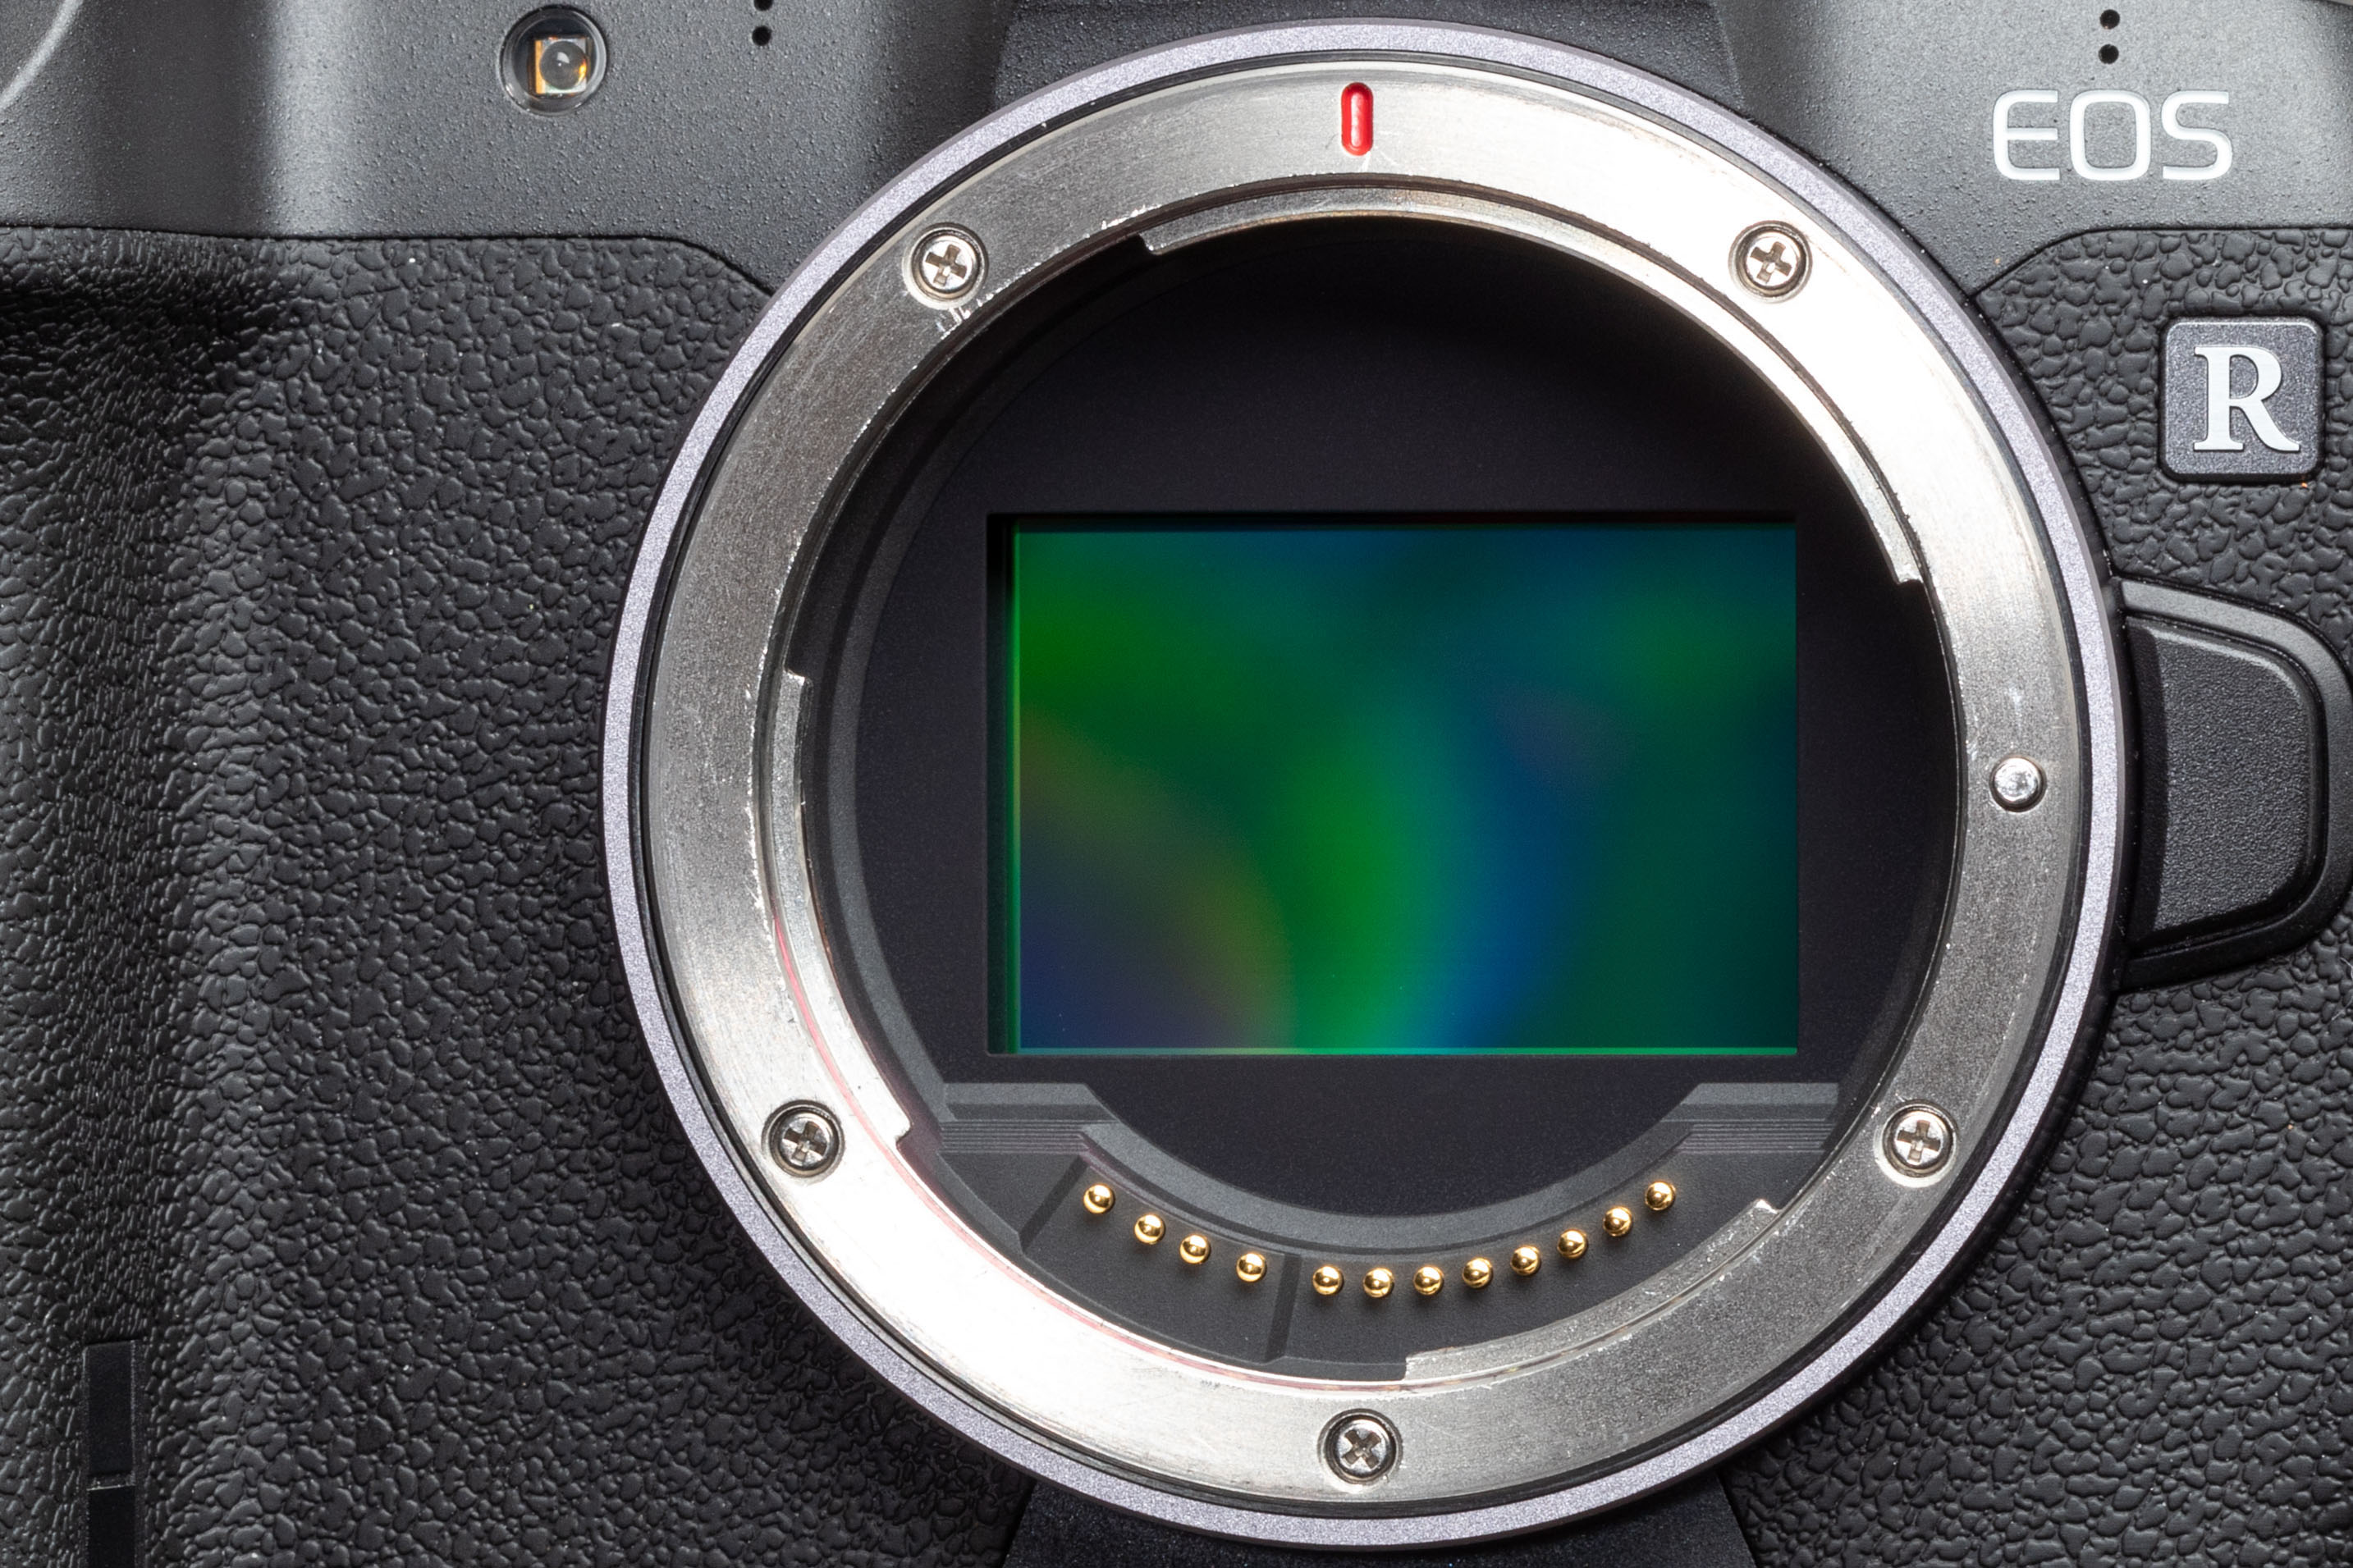 Leak Canon Has A 63mp Full Frame Sensor Possibly For A